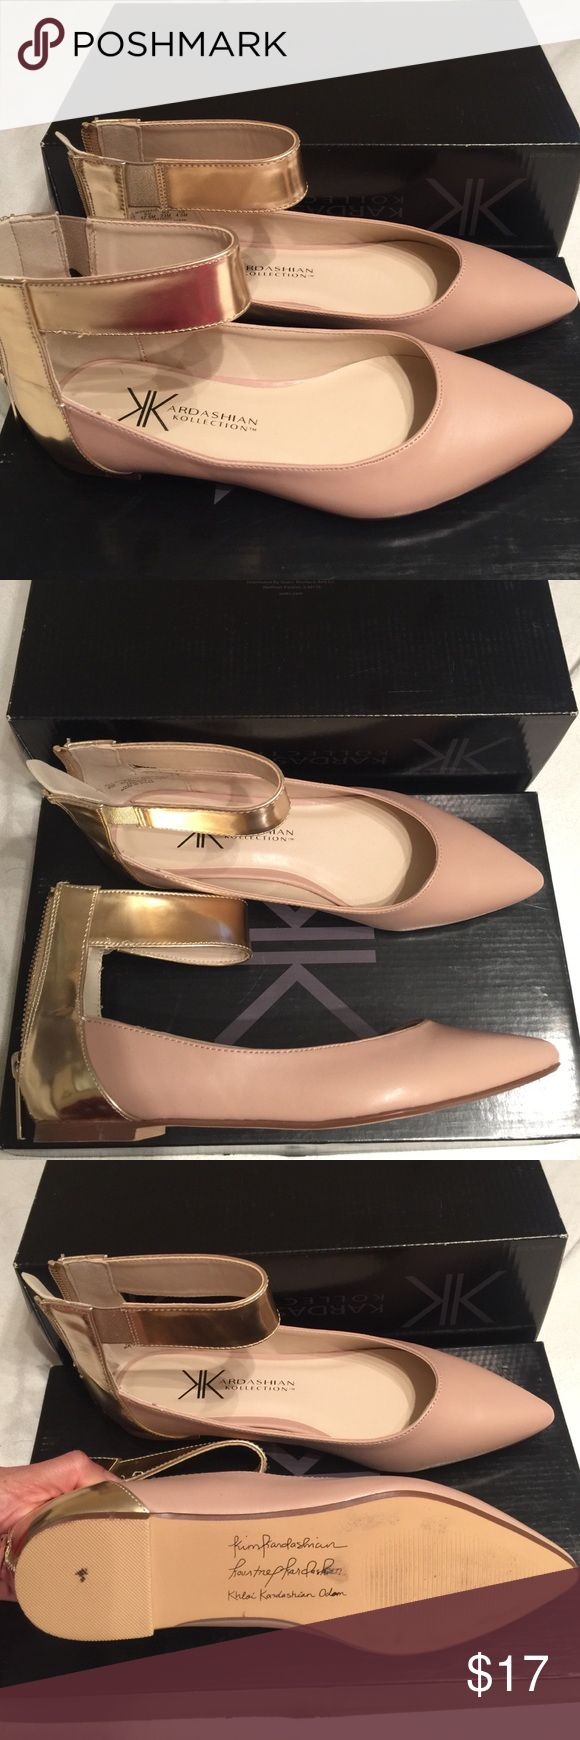 Kardashian Kollection Flats Worn once. In great condition. Kardashian Kollection Shoes Flats & Loafers